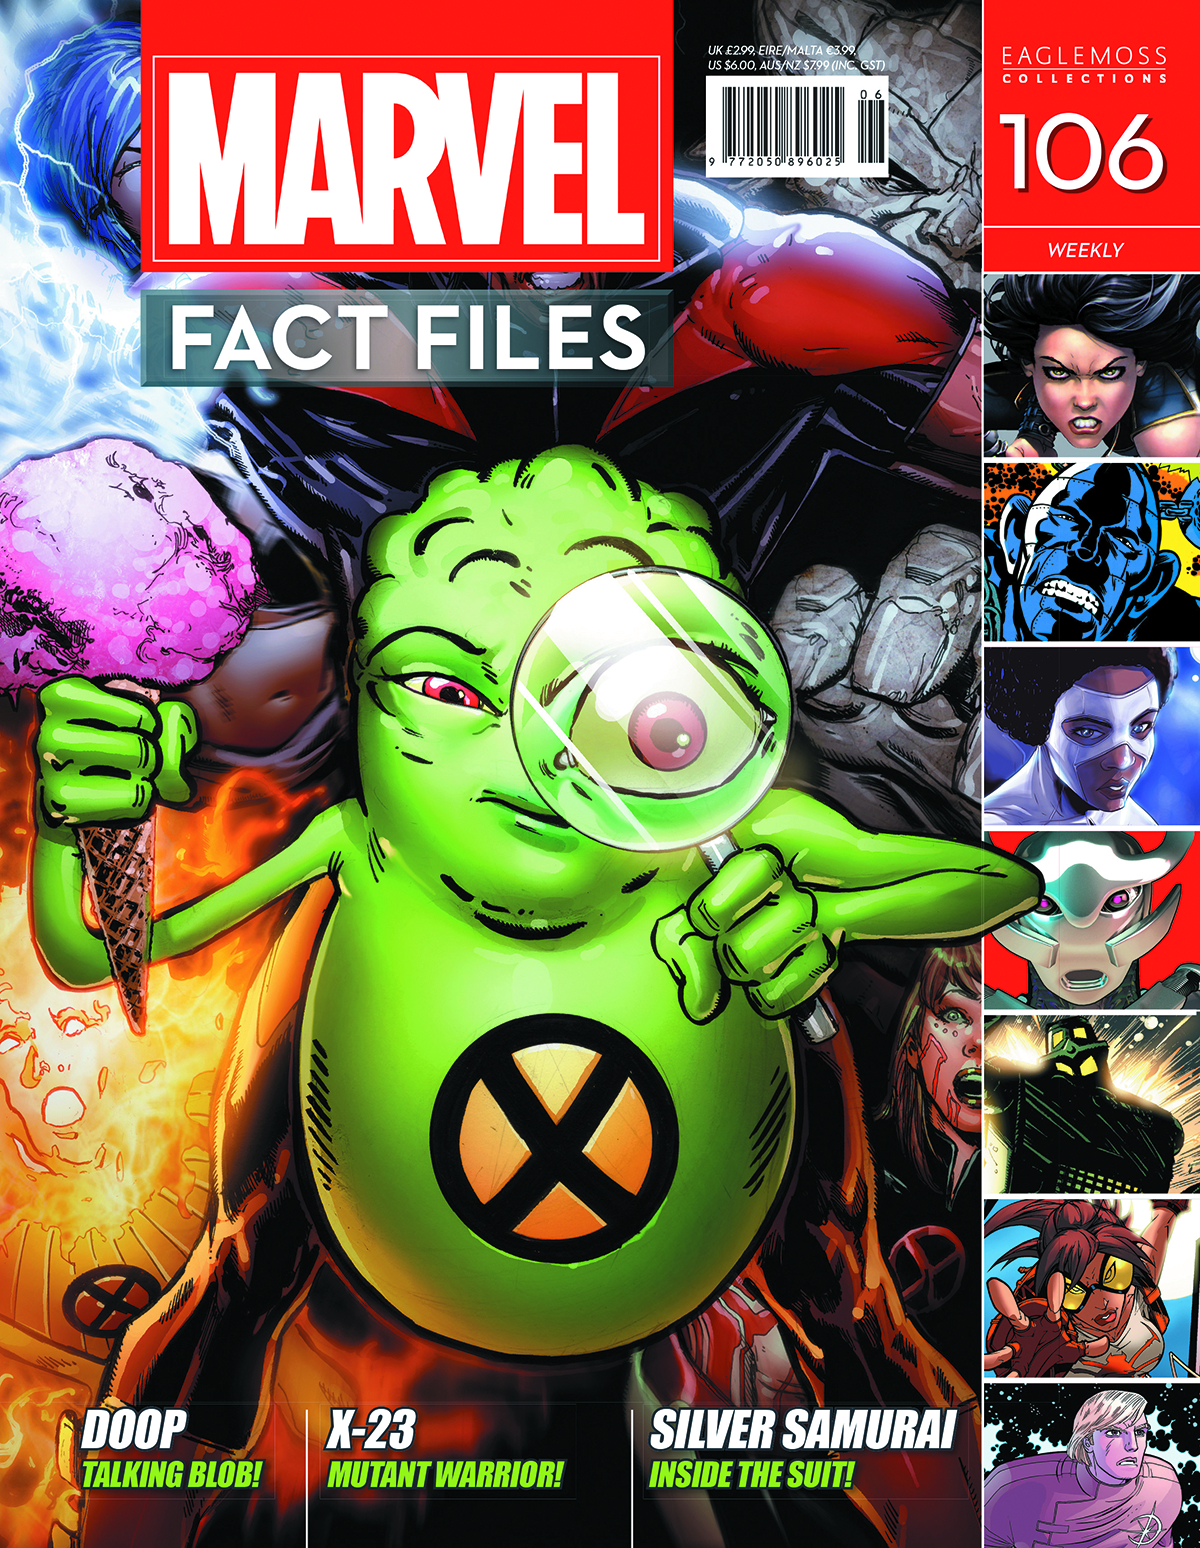 MARVEL FACT FILES #106 DOOP COVER